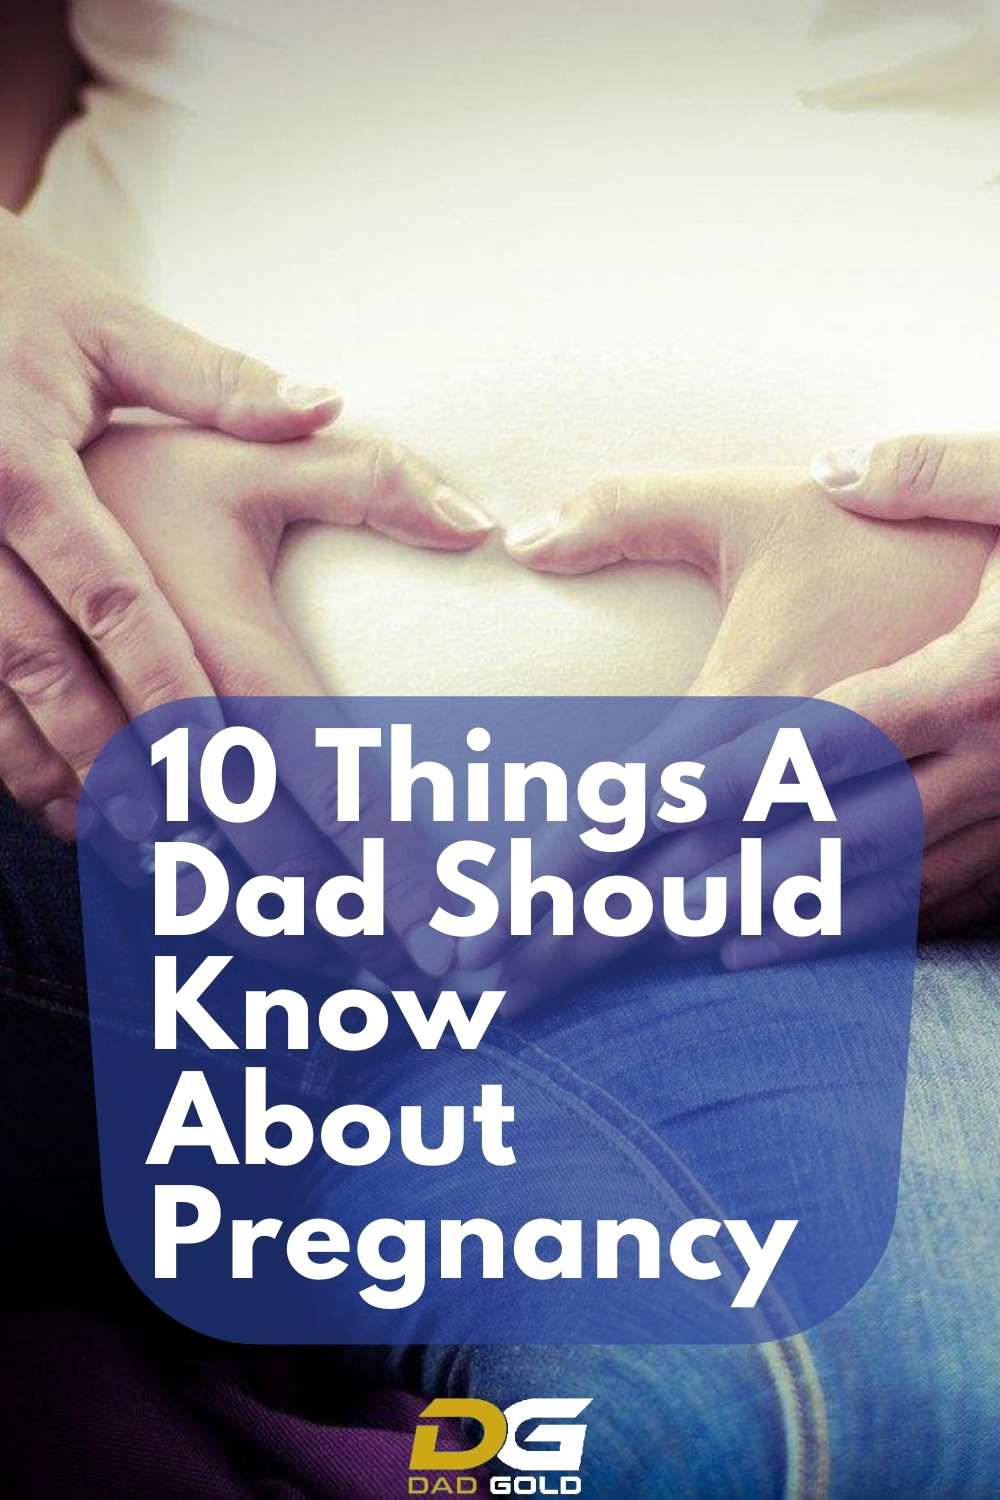 10 Things A Dad Should Know About Pregnancy